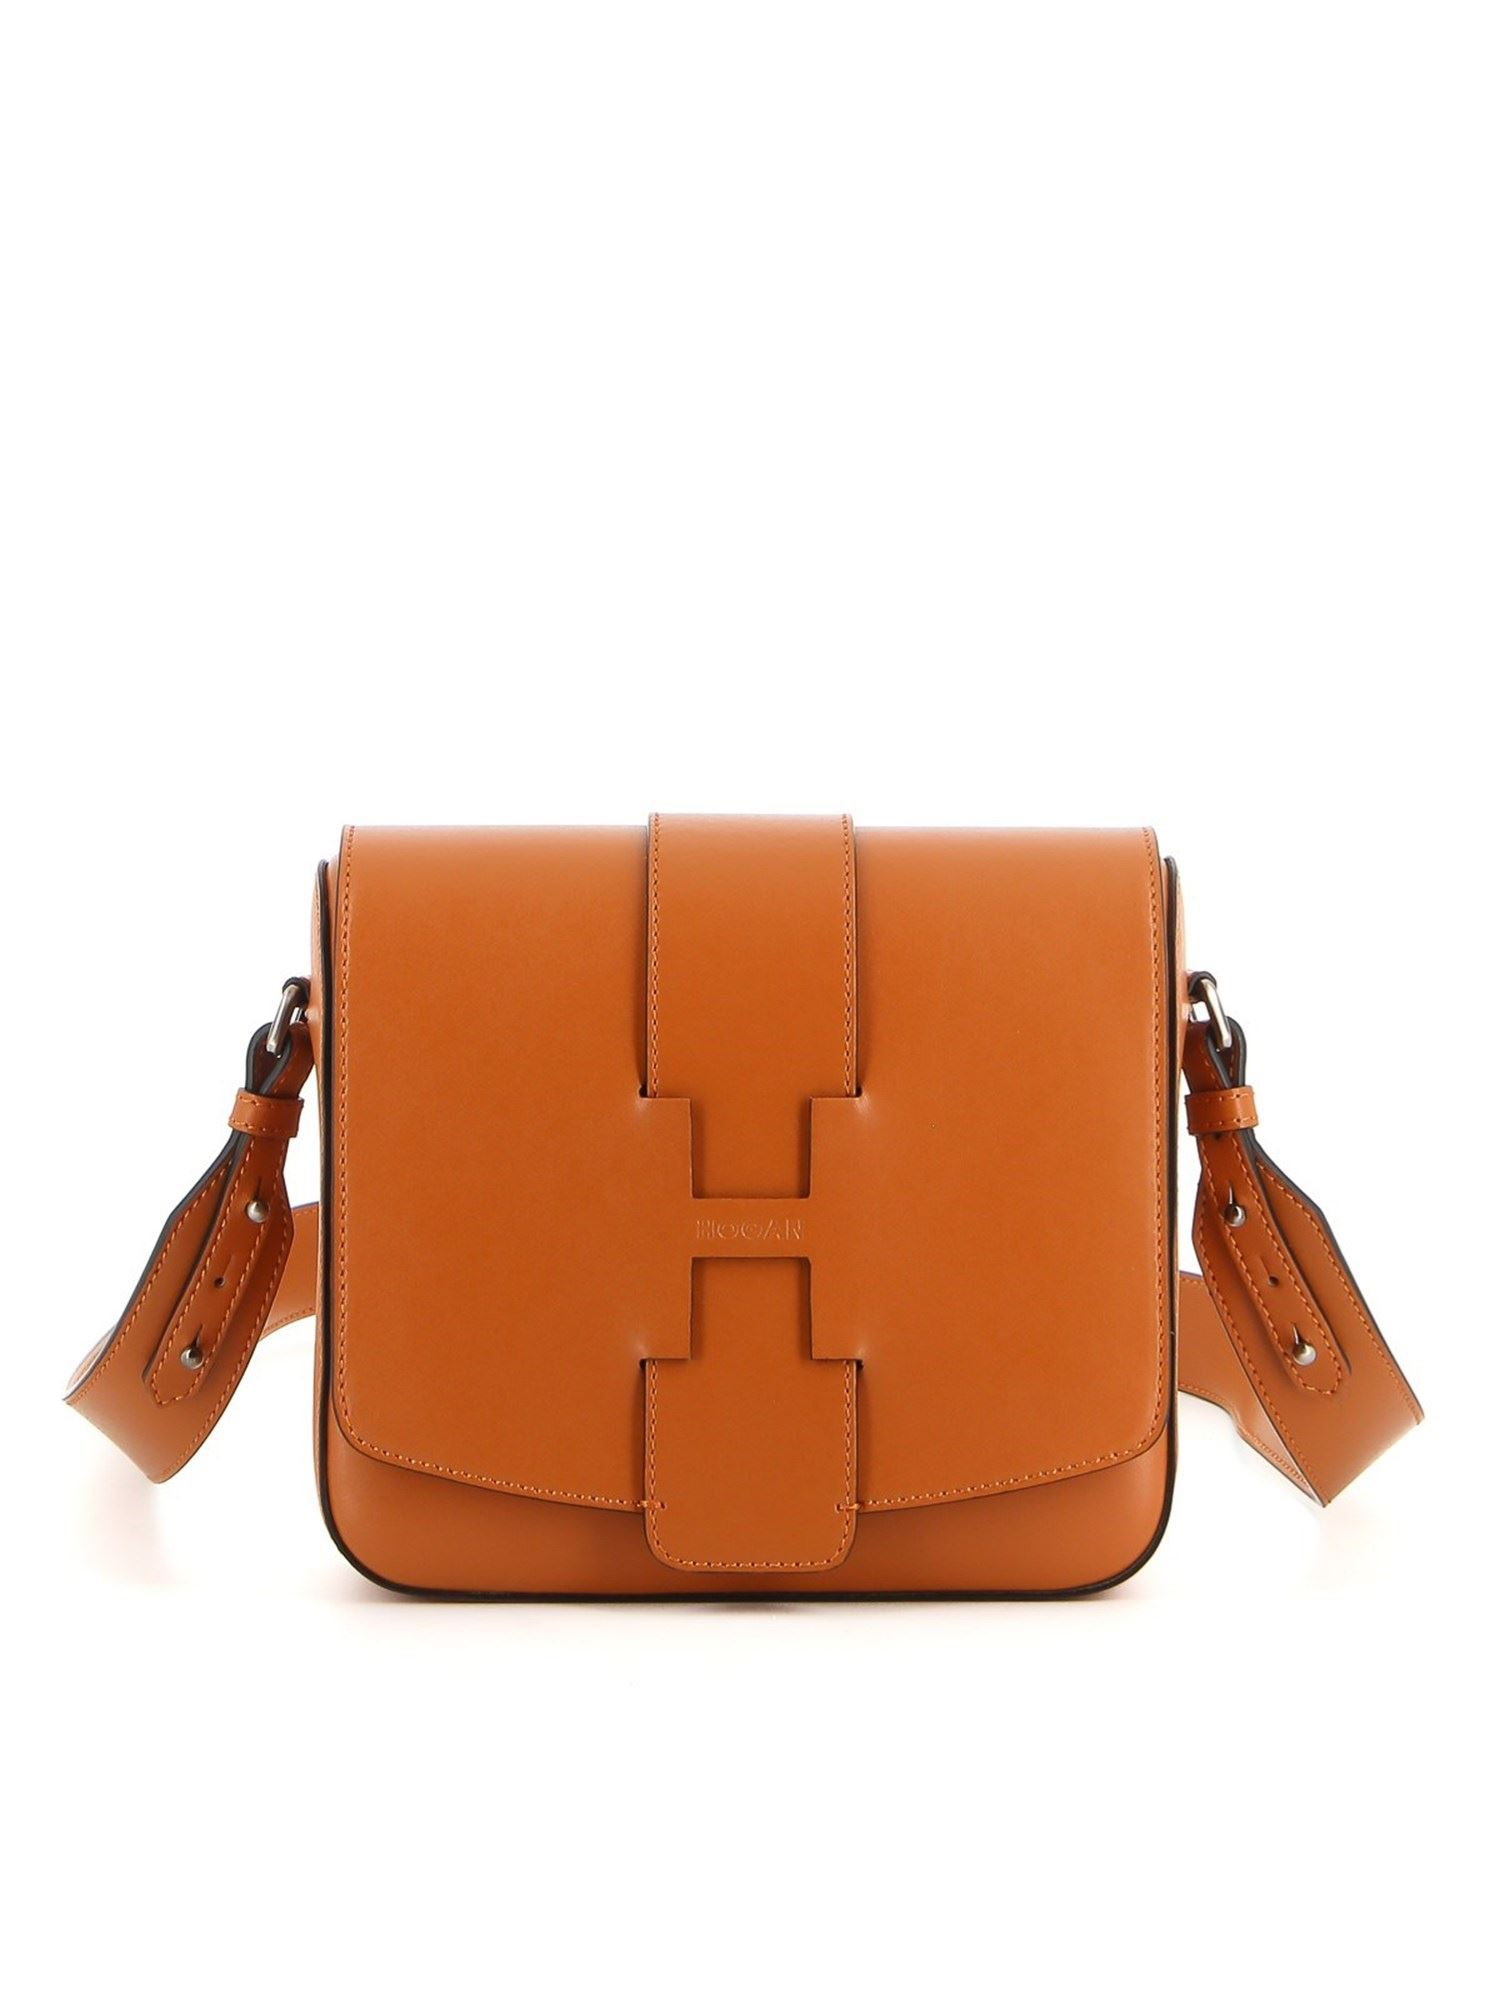 Hogan Leathers SMOOTH LEATHER CROSSBODY BAG IN BROWN